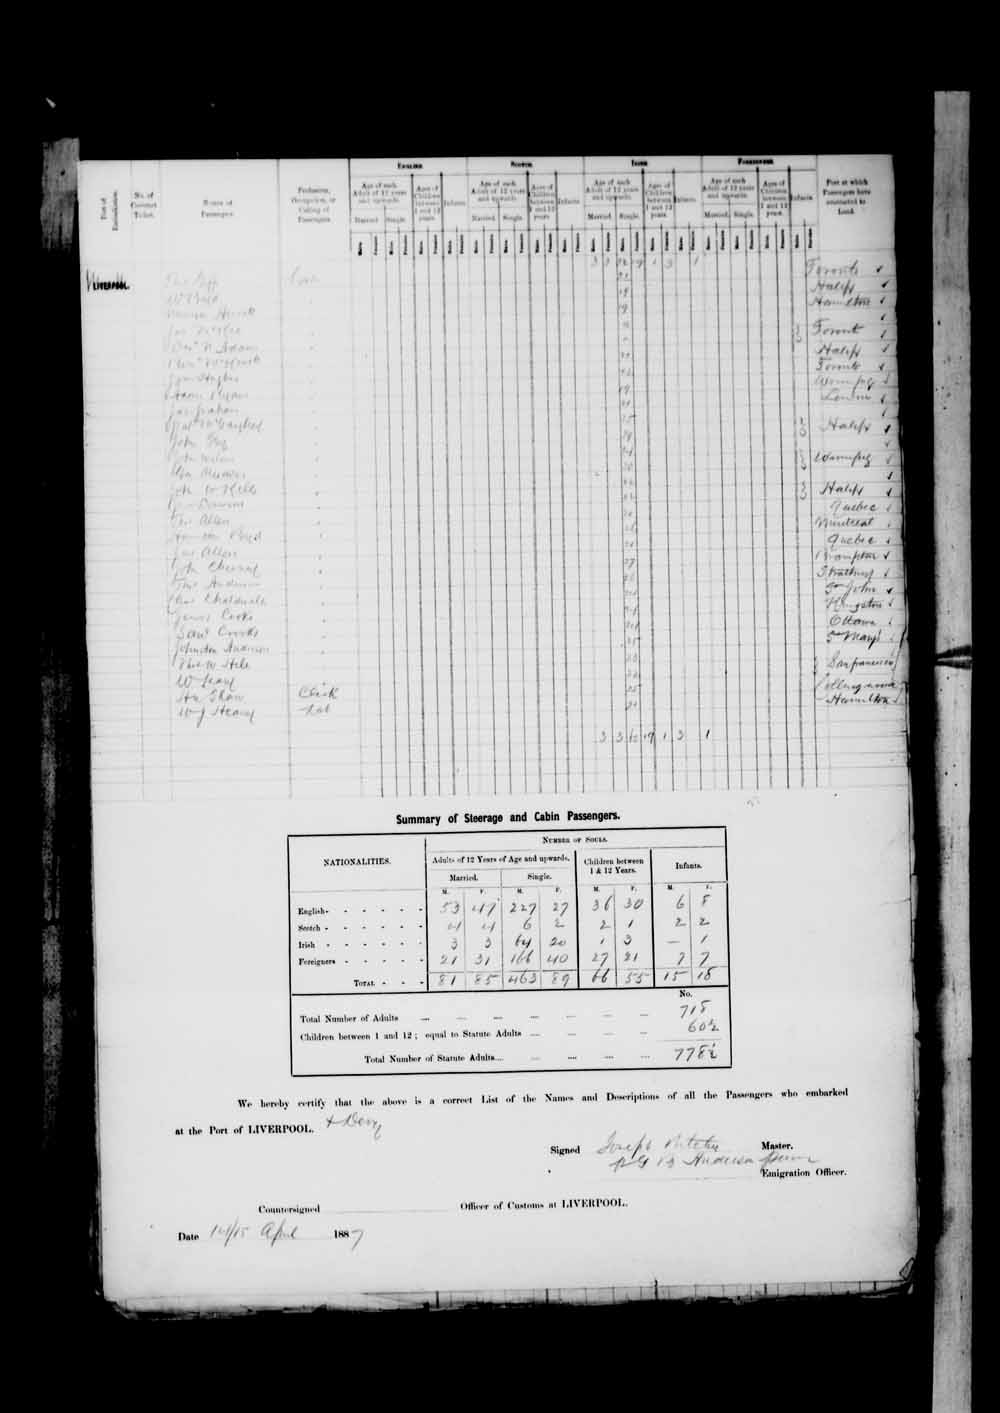 Digitized page of Passenger Lists for Image No.: e003674933